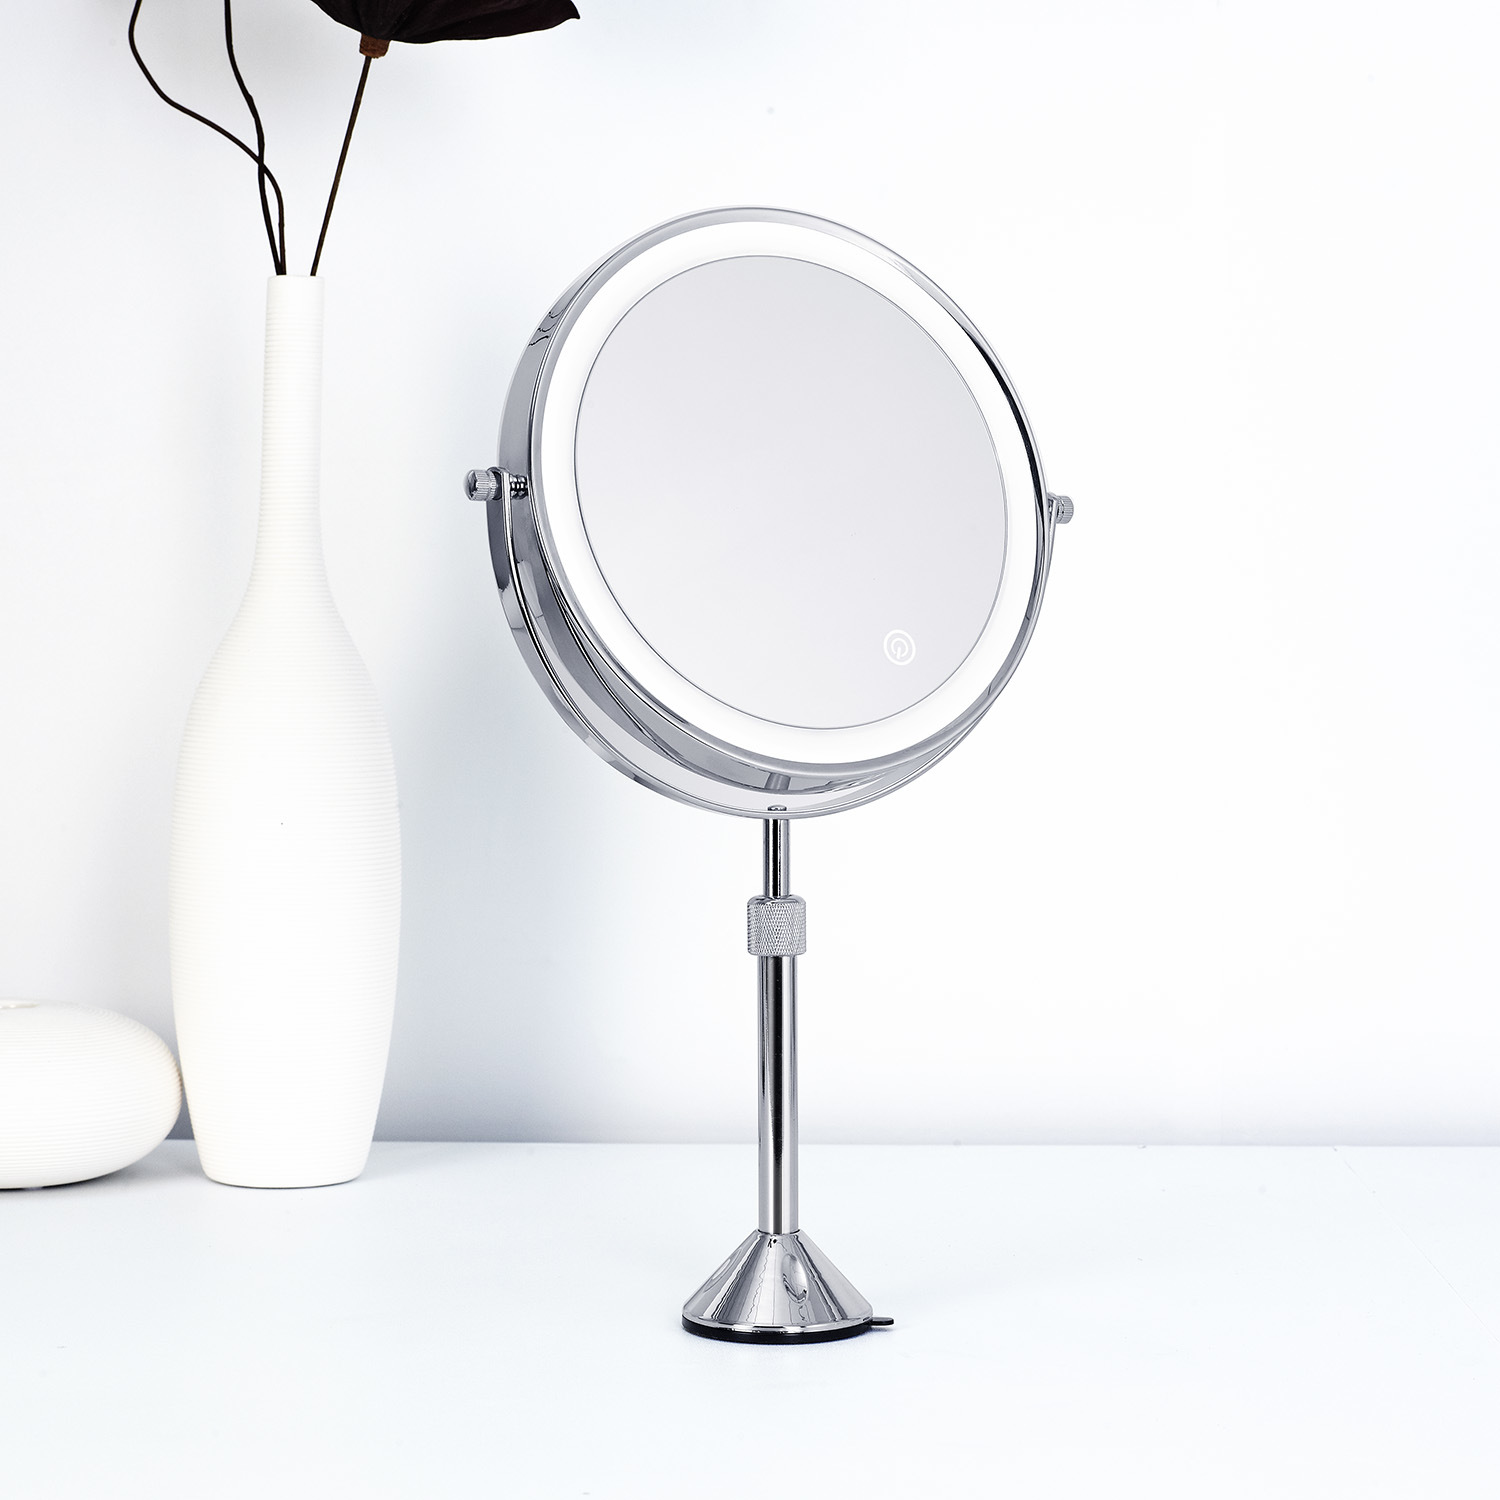 LED Makeup Vanity Mirror Lights with Dimmable Touch Dimmer with ETL Certificate